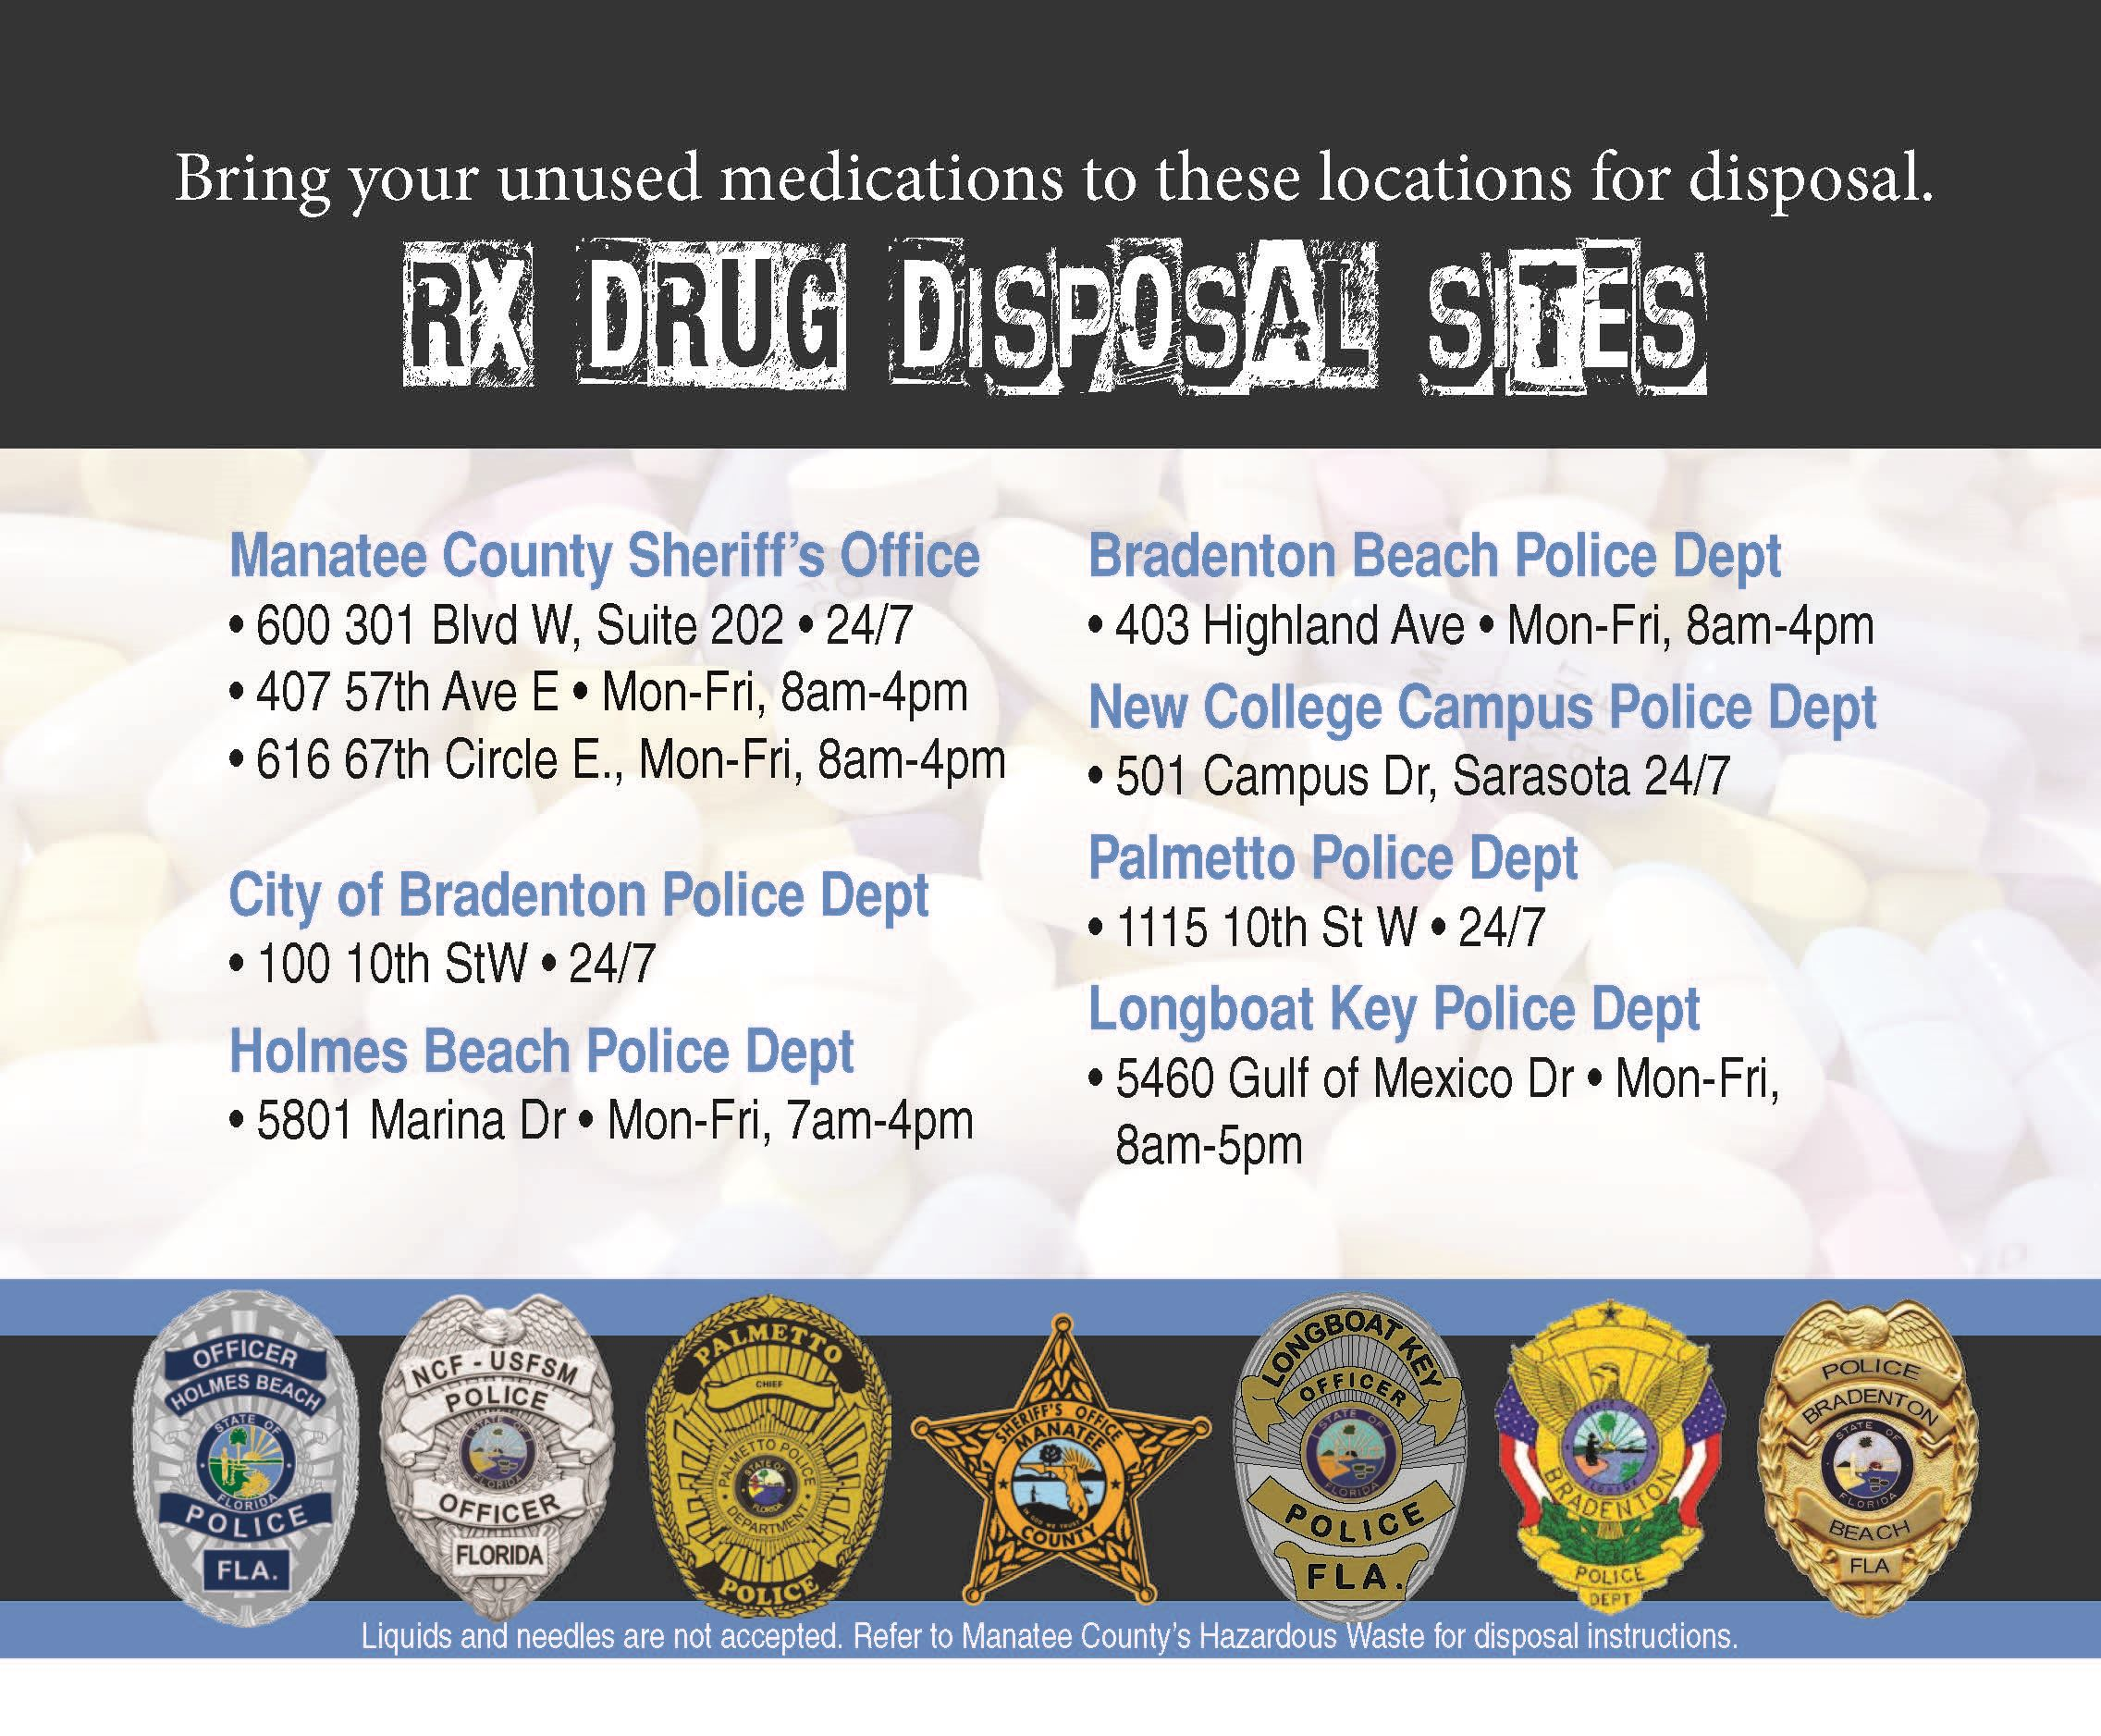 operation rx poster listing rx disposal locations